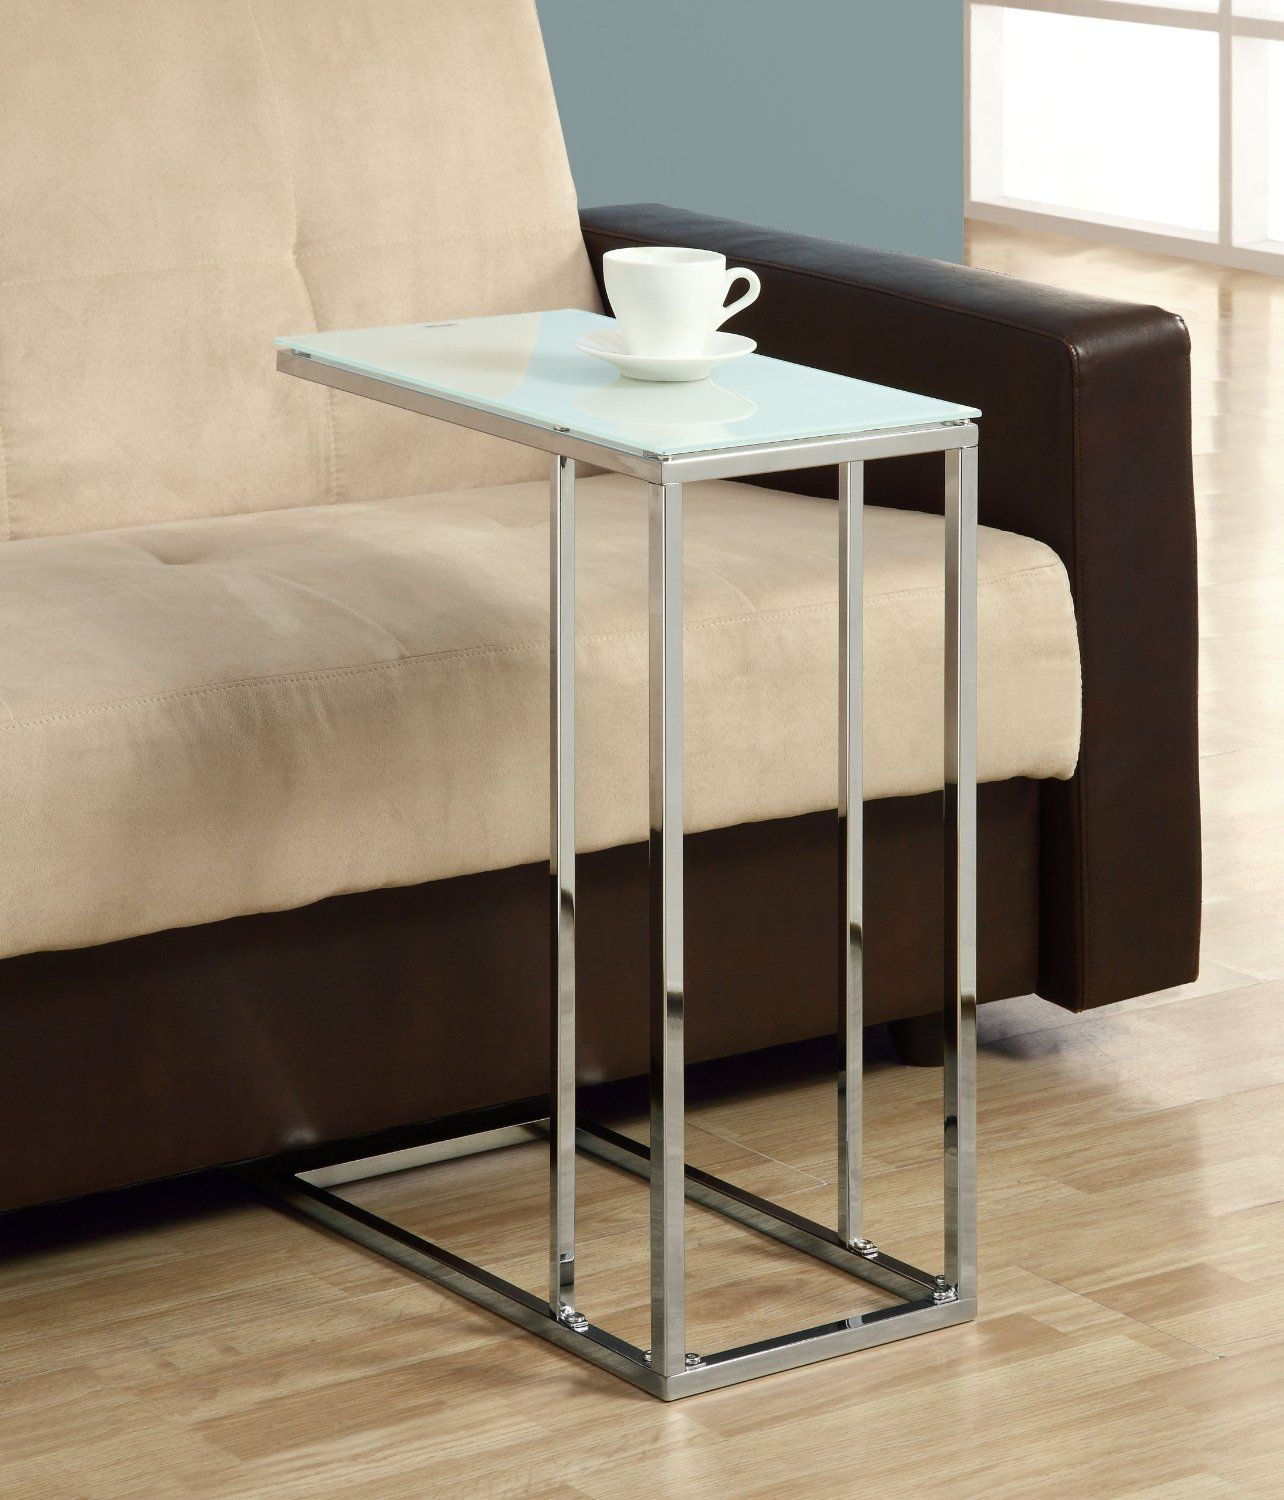 amazing living room end table. Amazon com  Coaster 900250 Contemporary Snack Table with Glass Top Silver Sofa